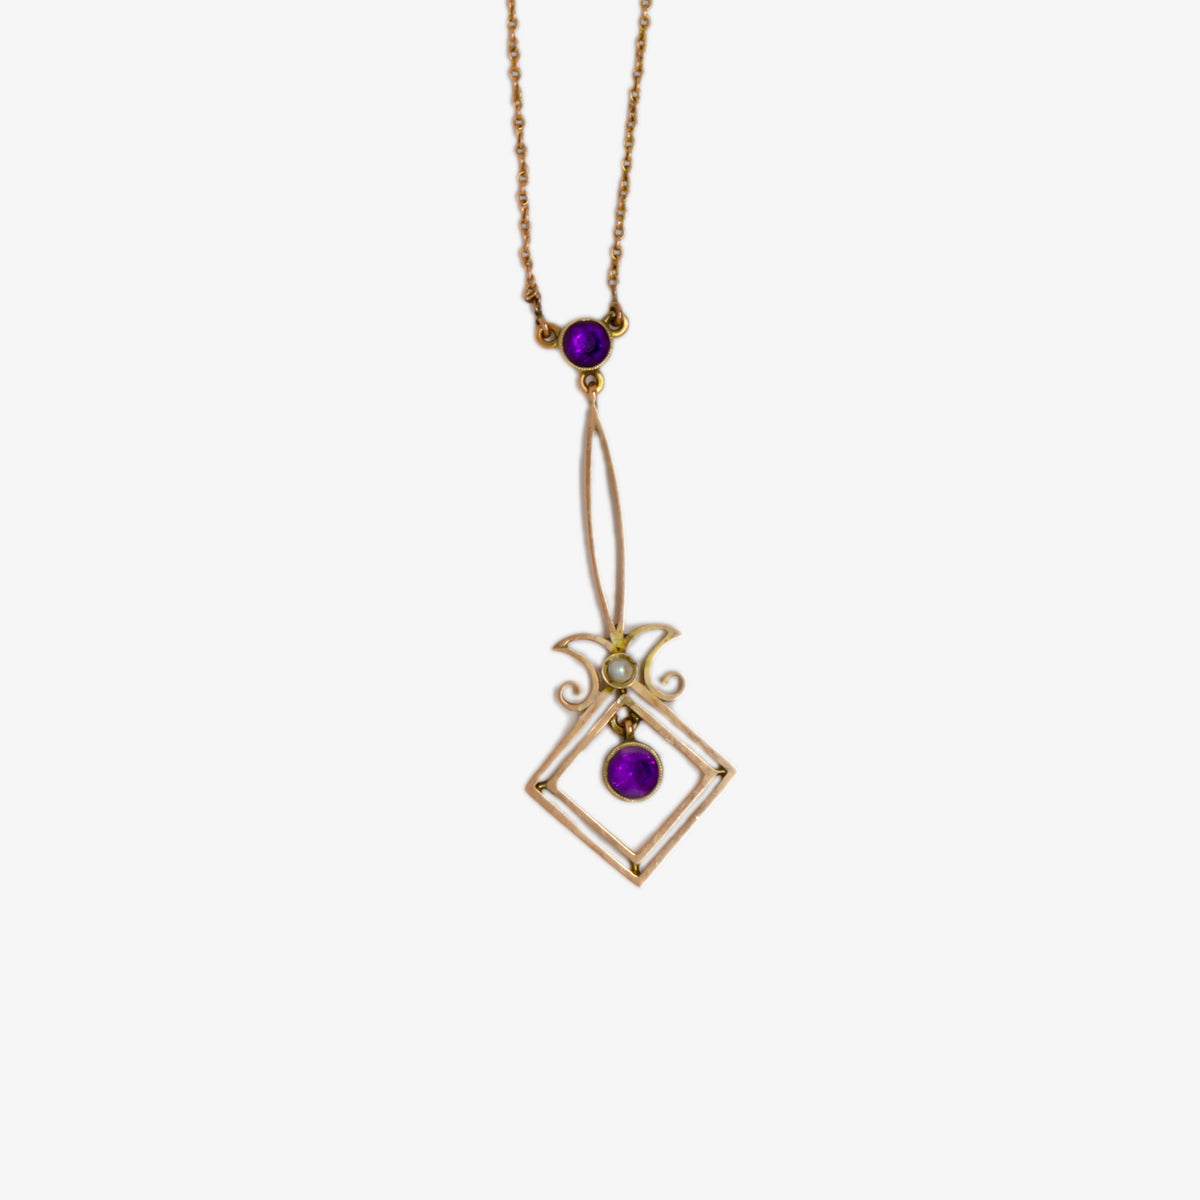 Antique Amethyst & Pearl Lavalier Necklace